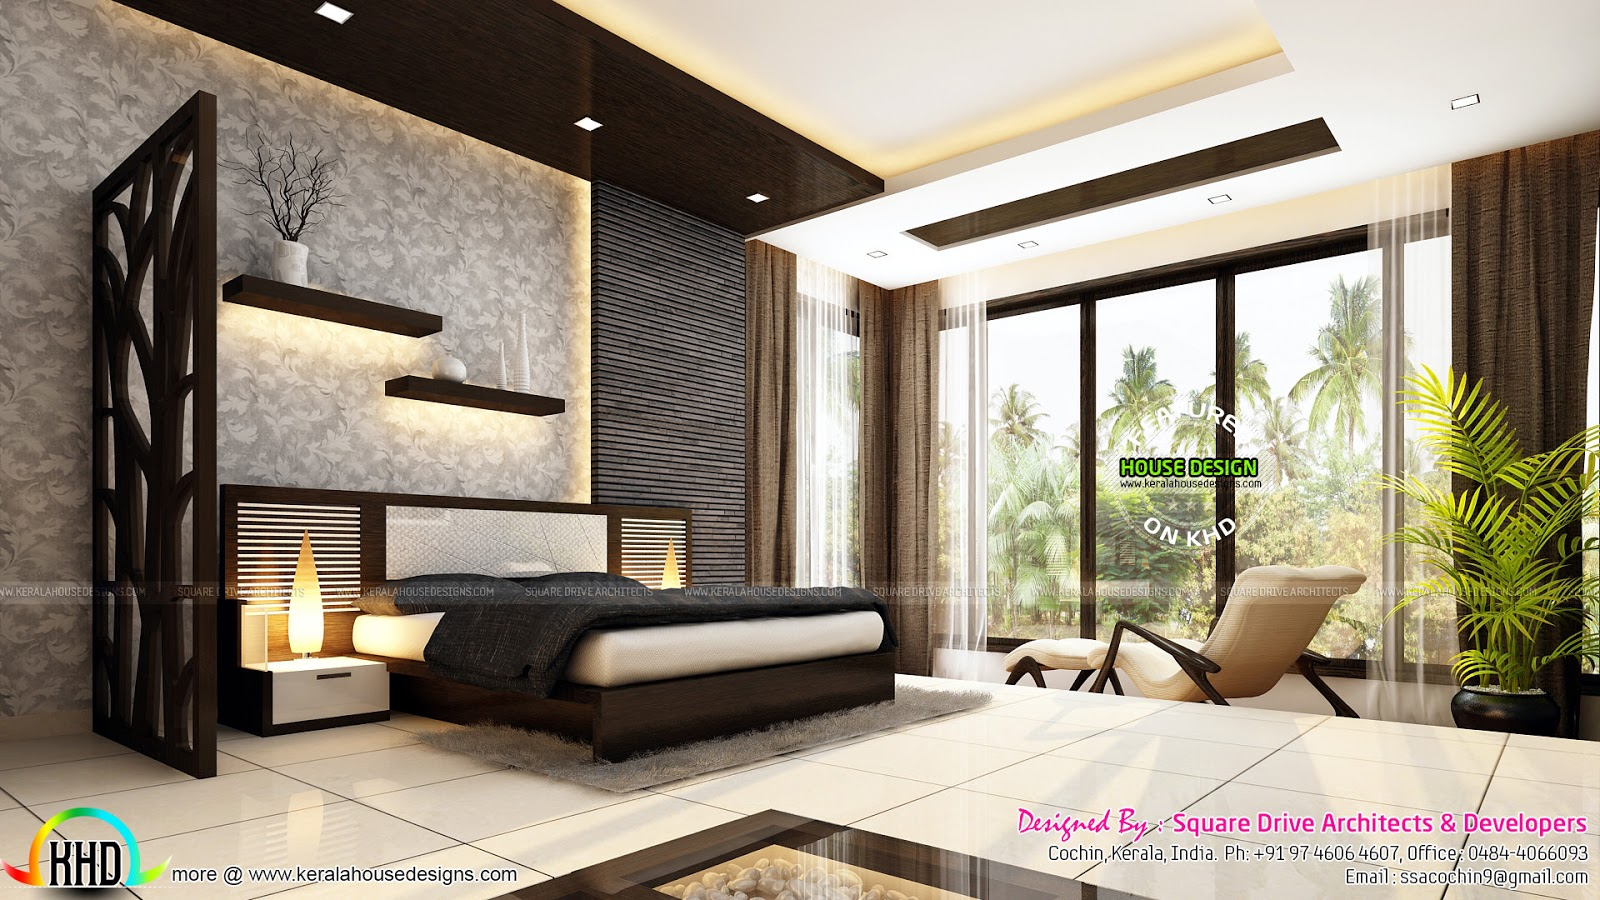 Very beautiful modern interior designs kerala home for Interior design for living room and bedroom